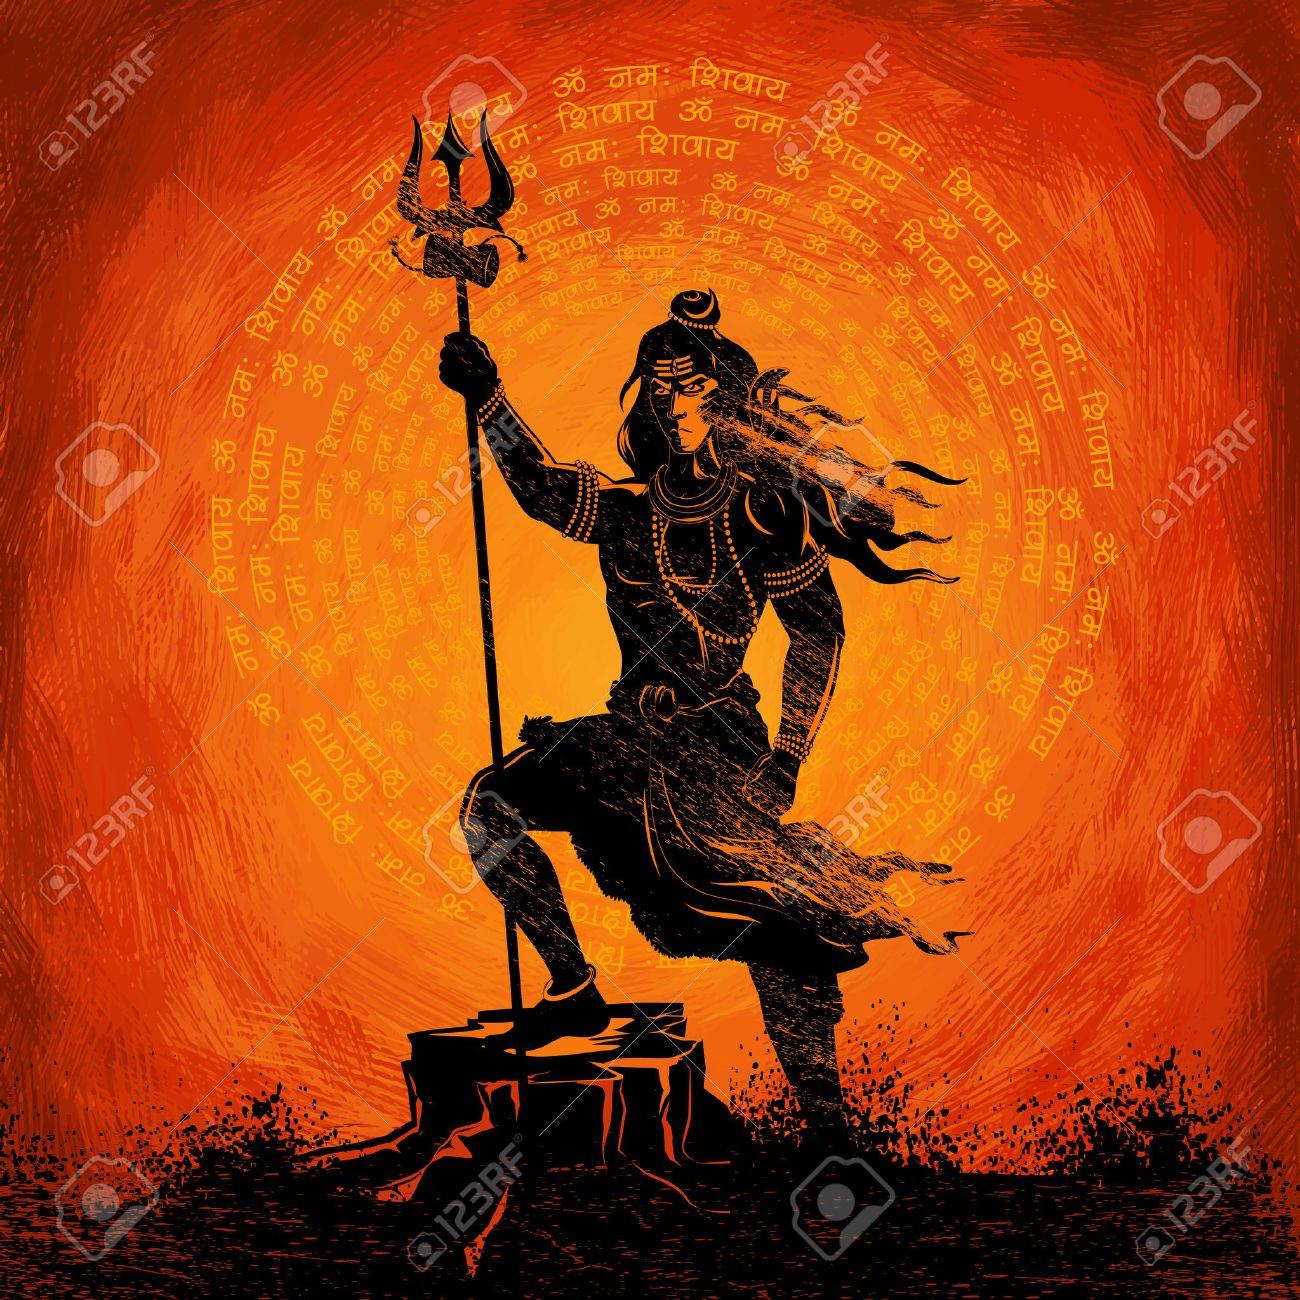 illustration of Lord Shiva, Indian God of Hindu with message